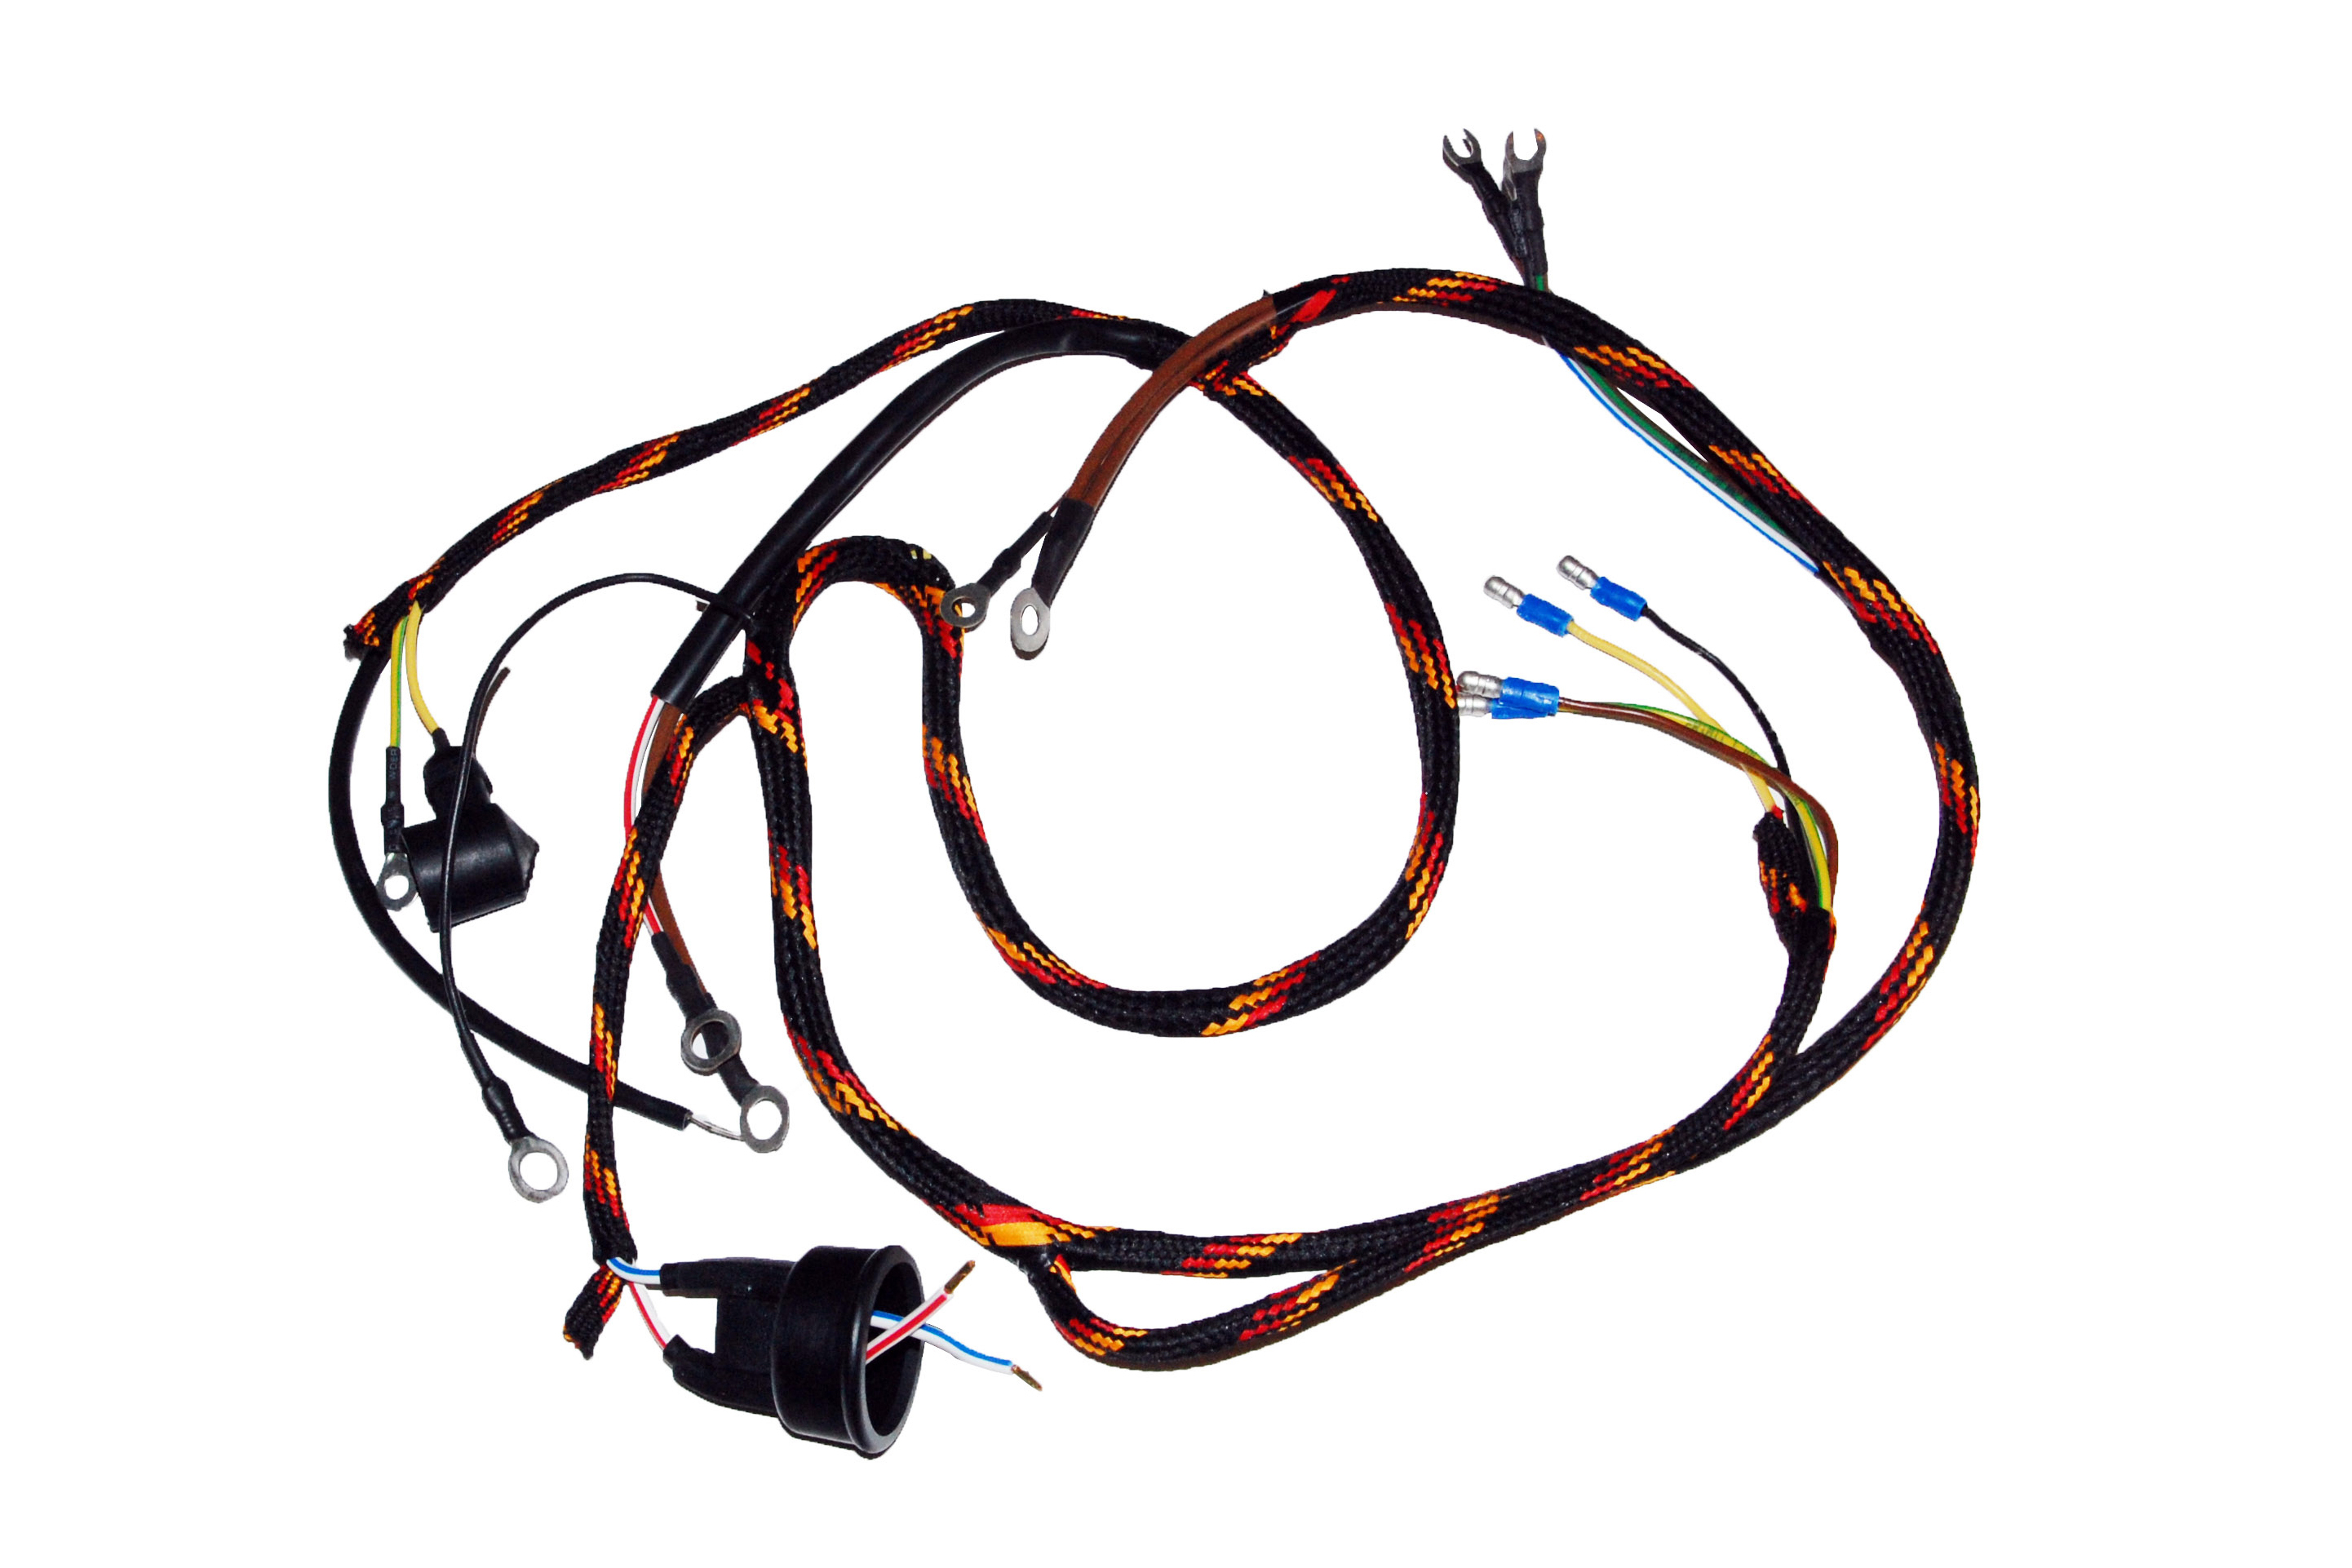 victoryfield tractor parts wiring harness